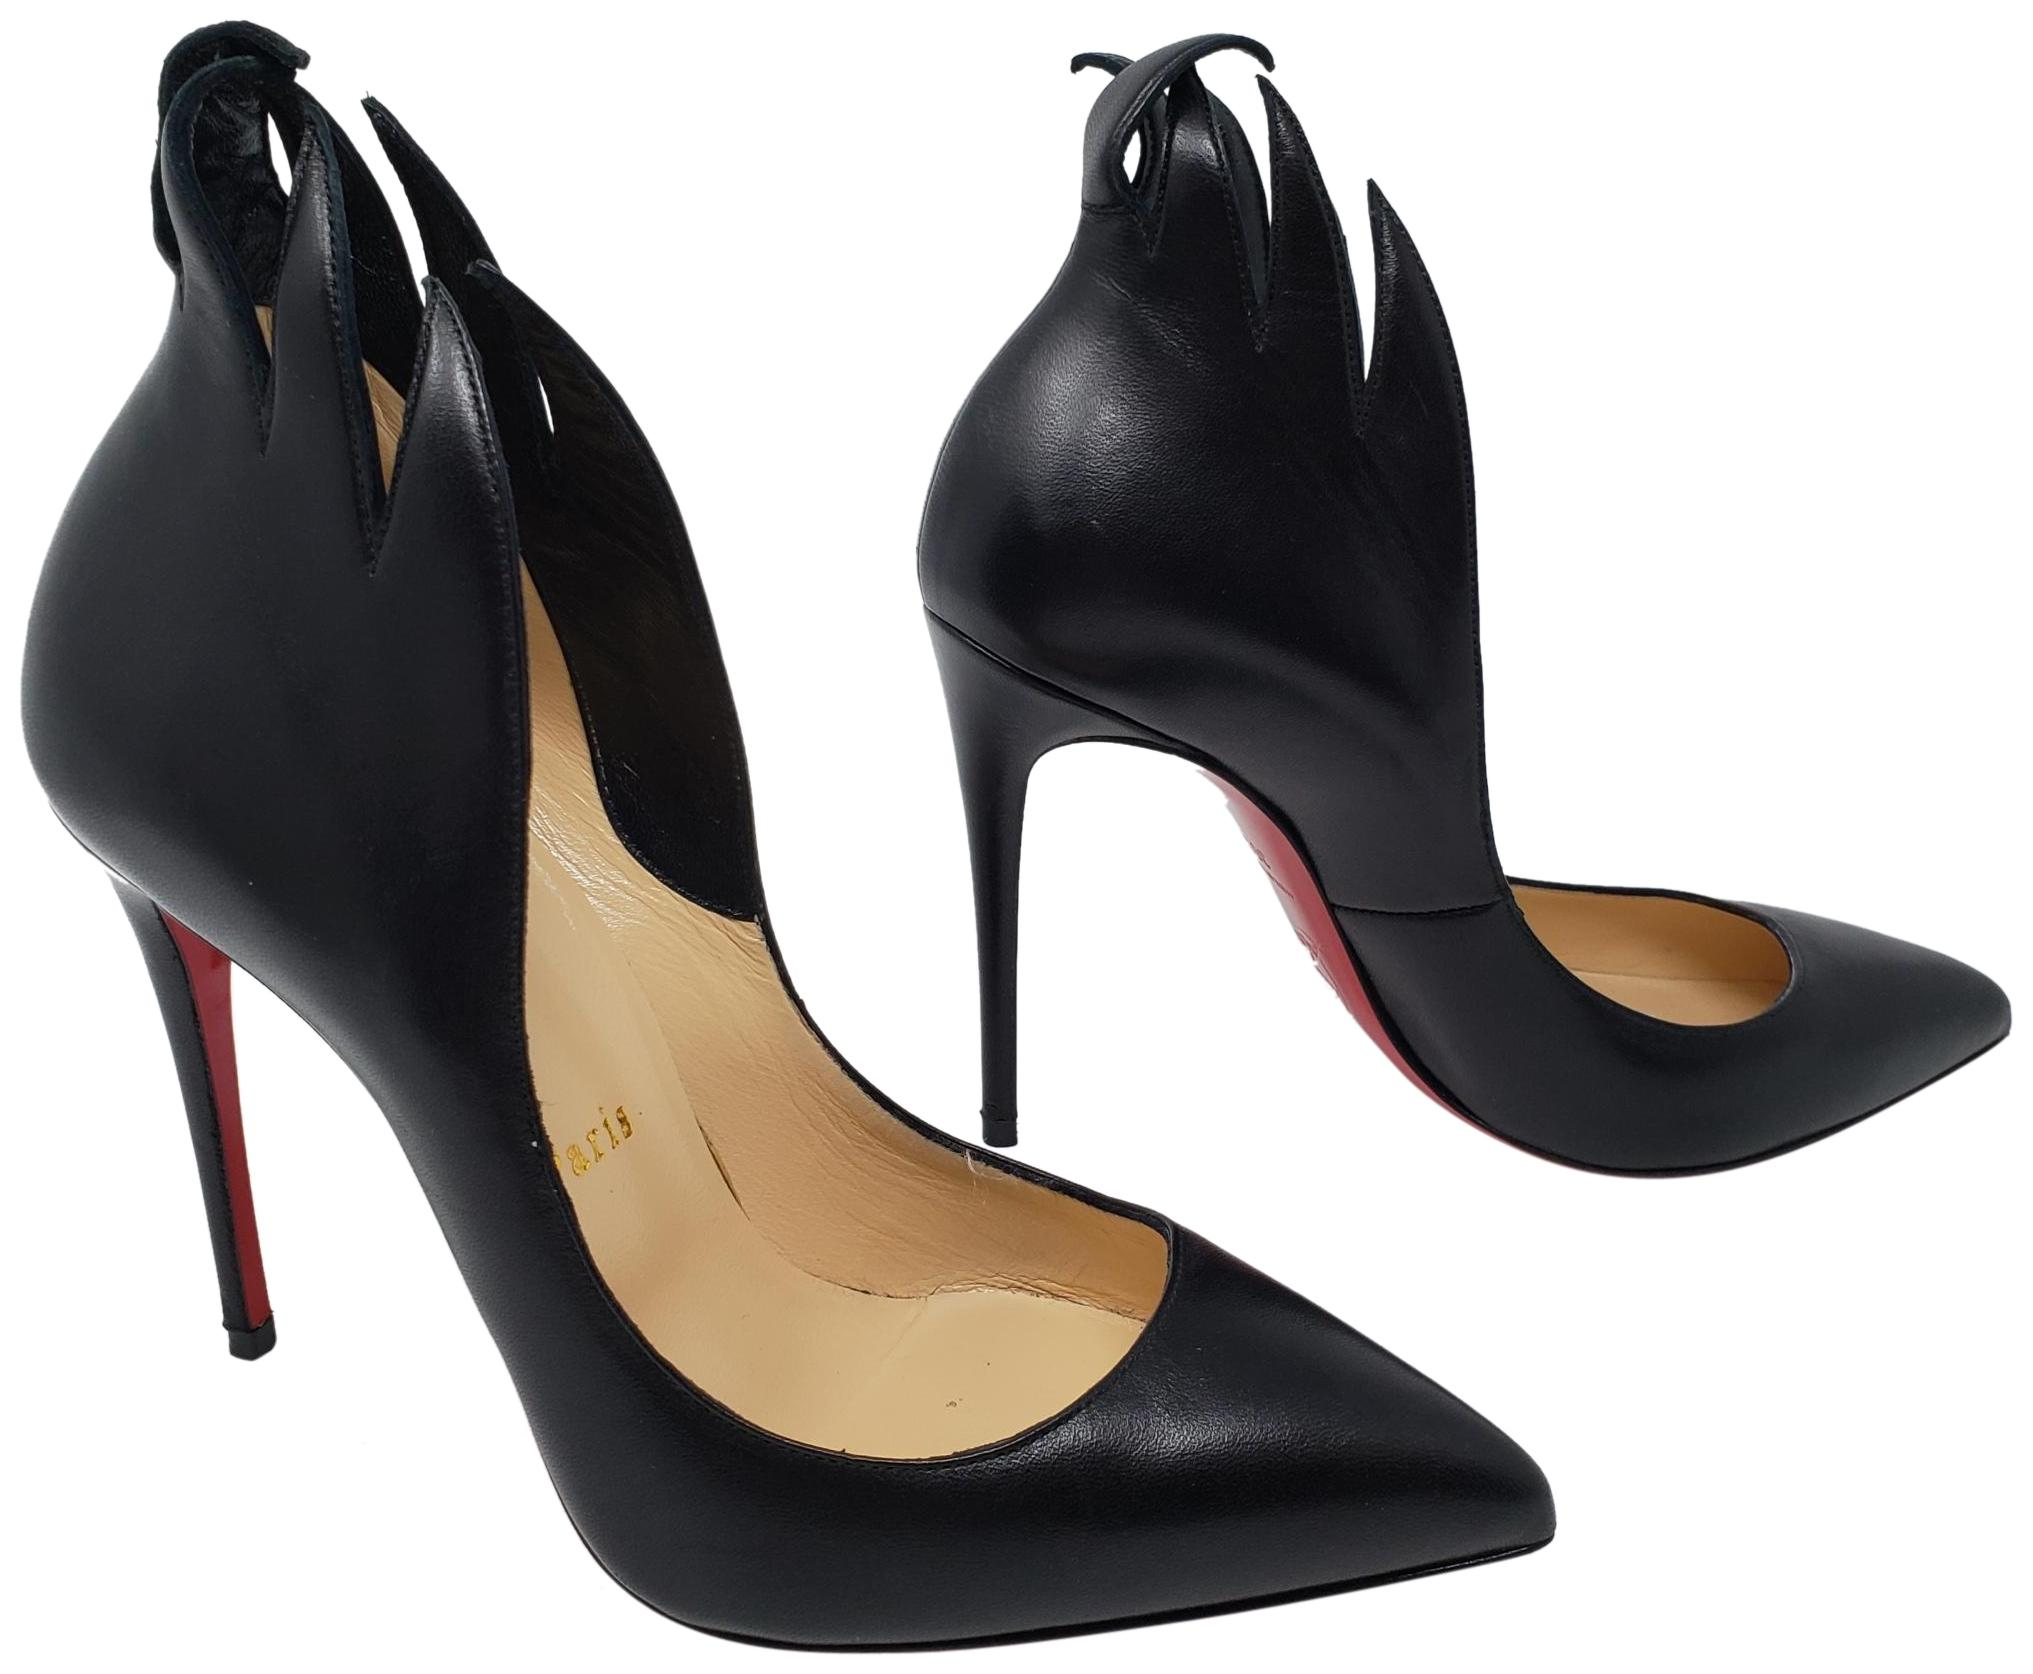 1b7ede105b08 Christian Louboutin Black Black Black Leather Victorina Flame Pointed-toe  Pumps Size EU 36.5 (Approx. US 6.5) Regular (M